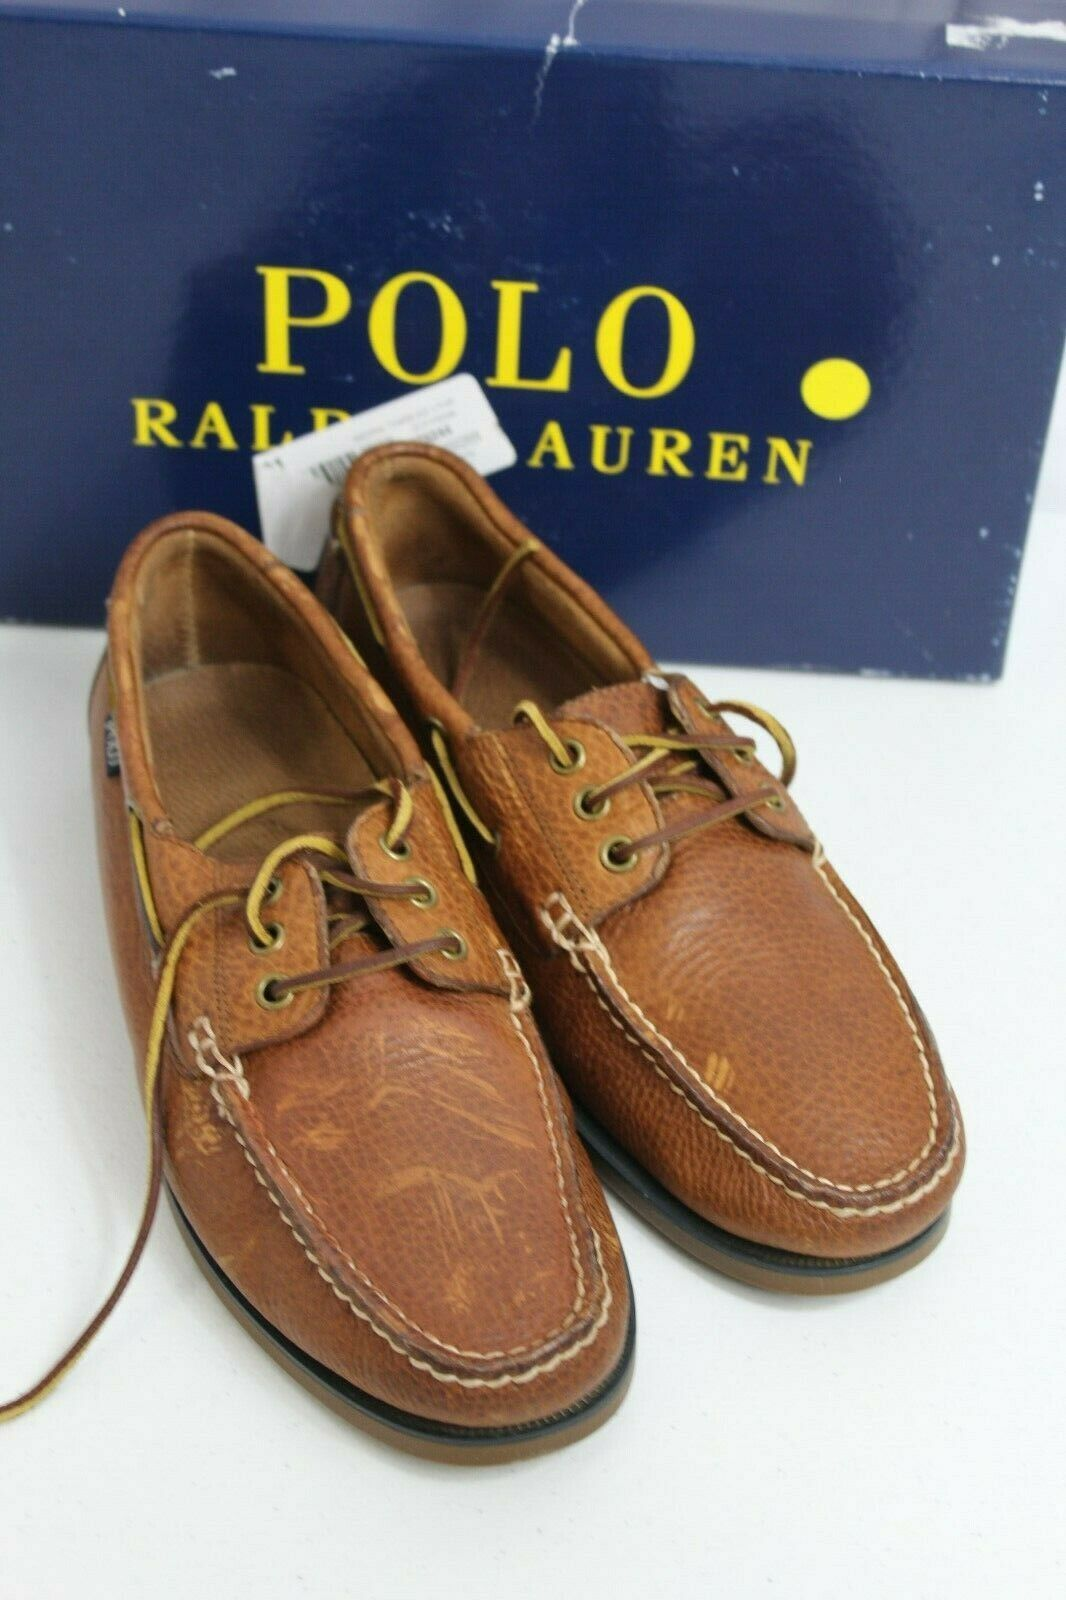 Polo Ralph Lauren Size 9.5D Men Bienne Brown Leather Boat Dock Loafers shoes  99